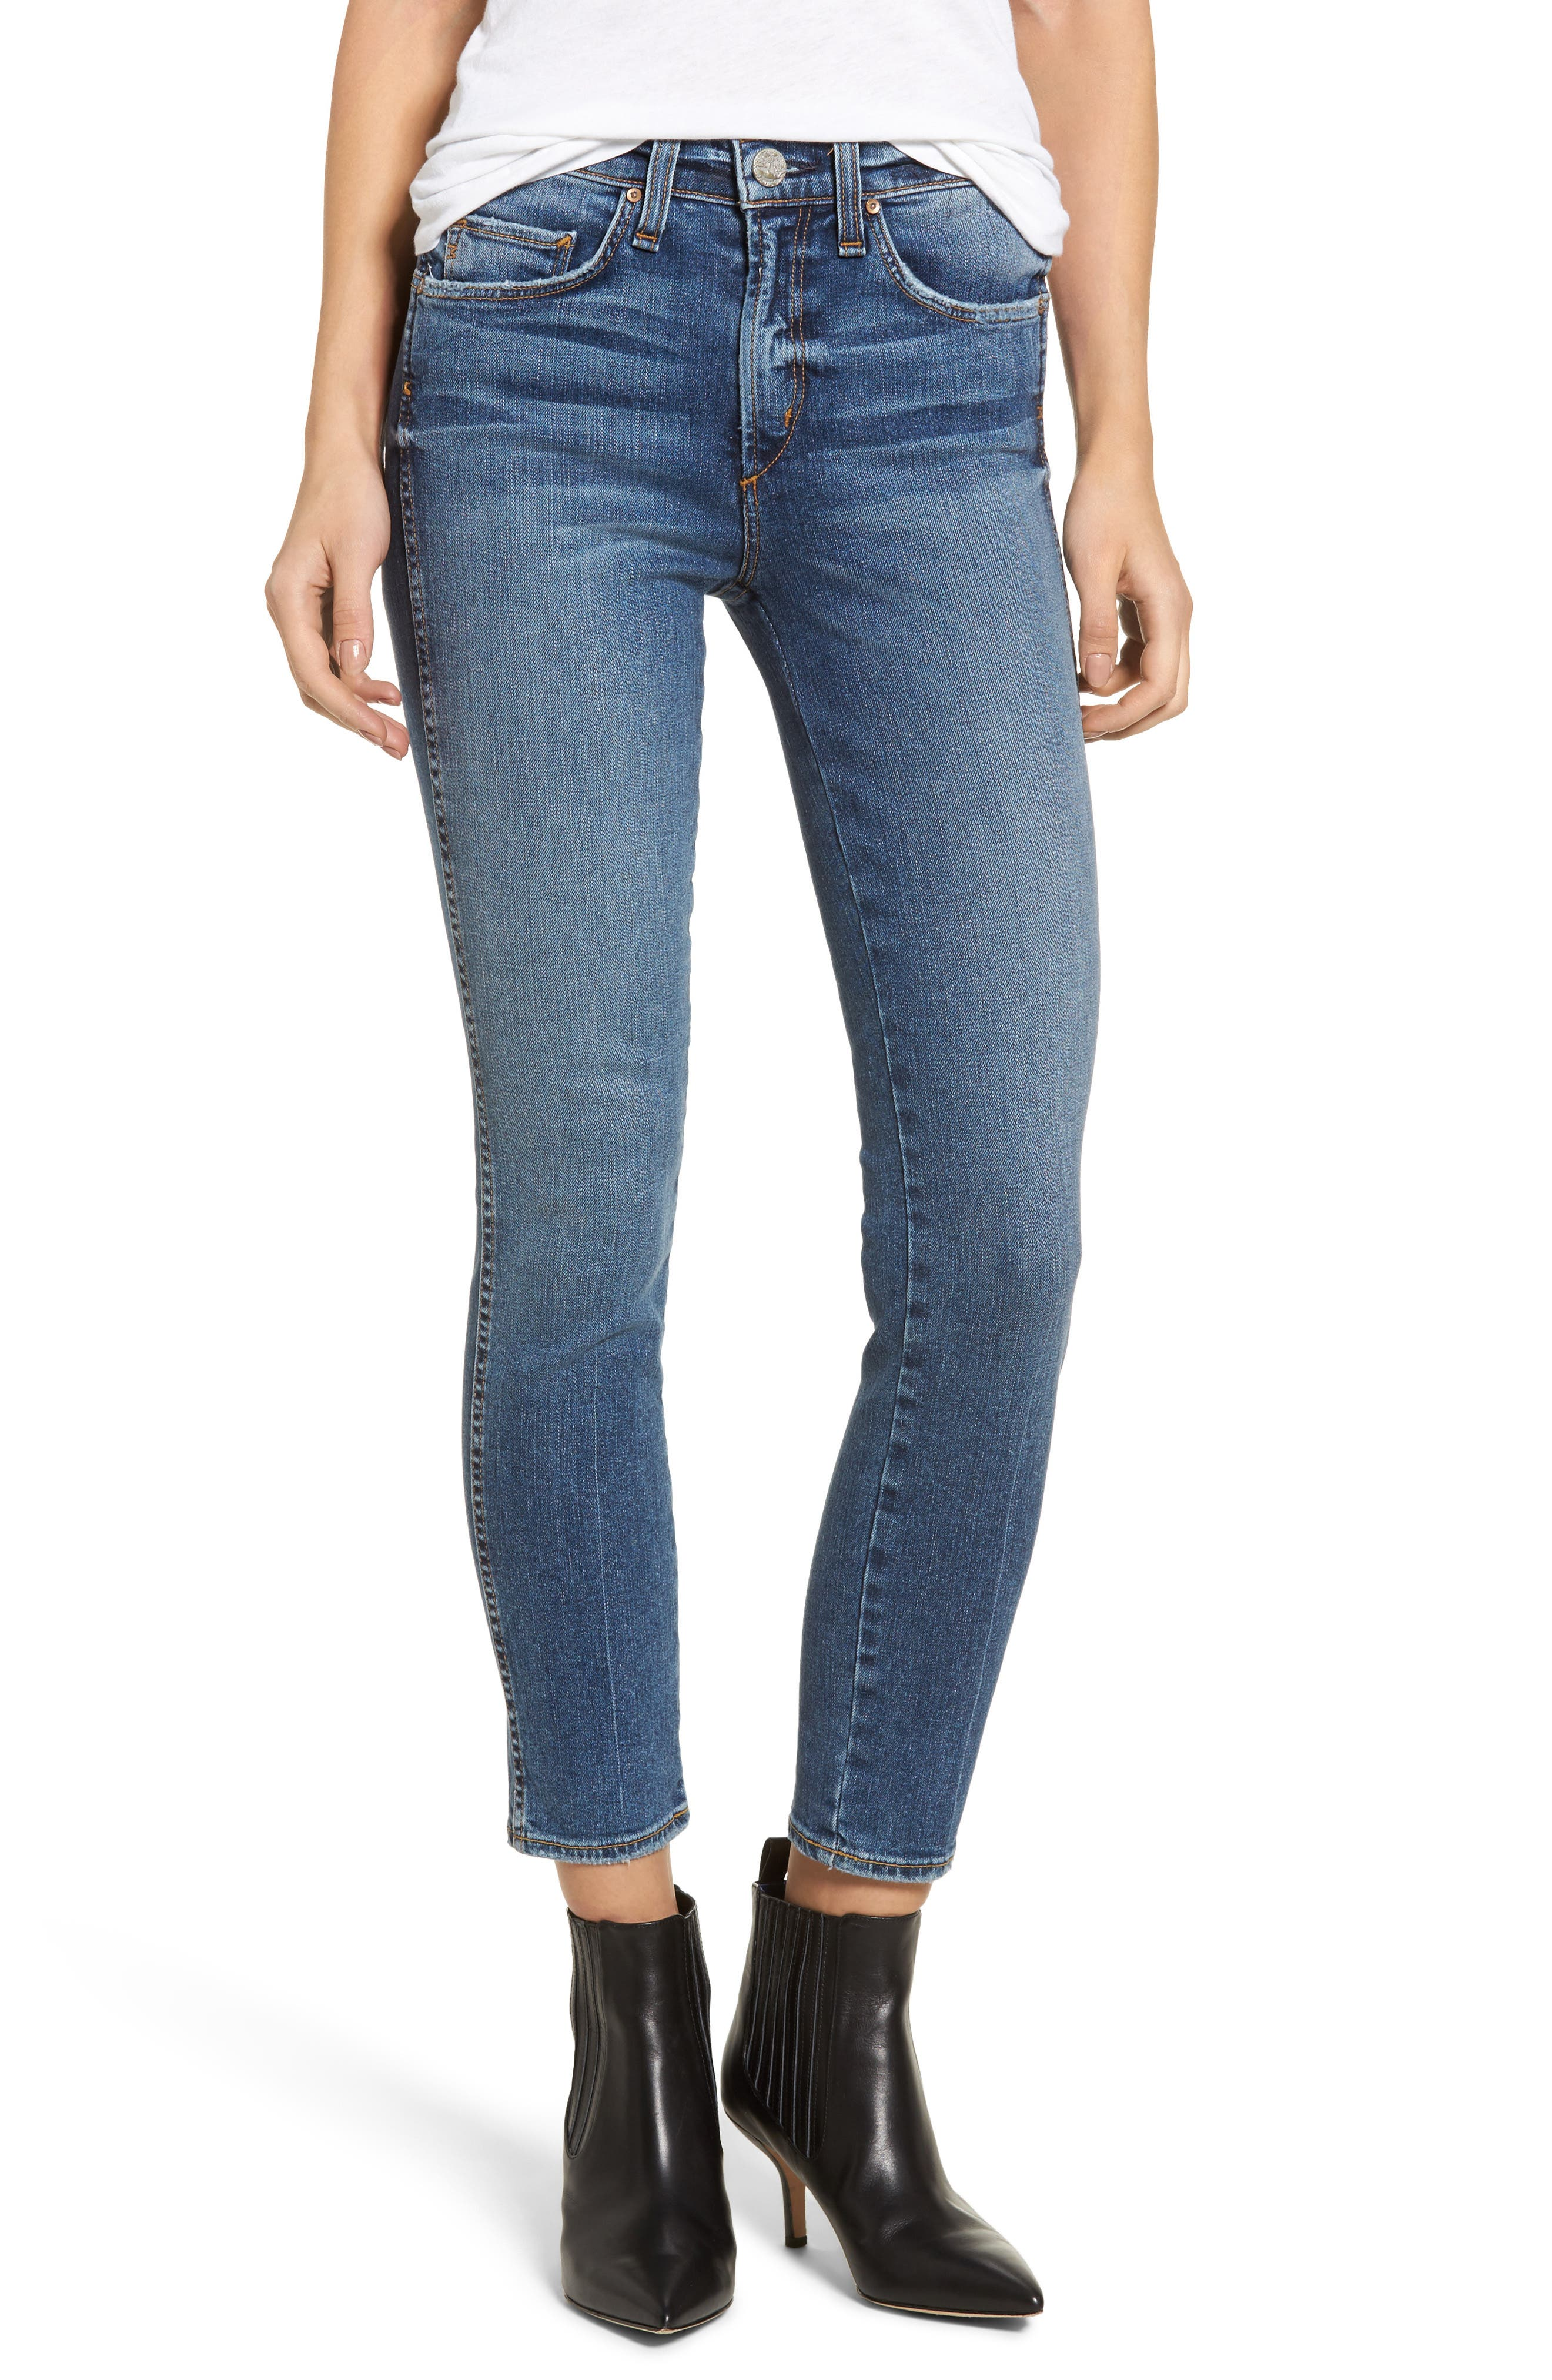 McGuire Windsor Destroyed High Waist Straight Leg Jeans